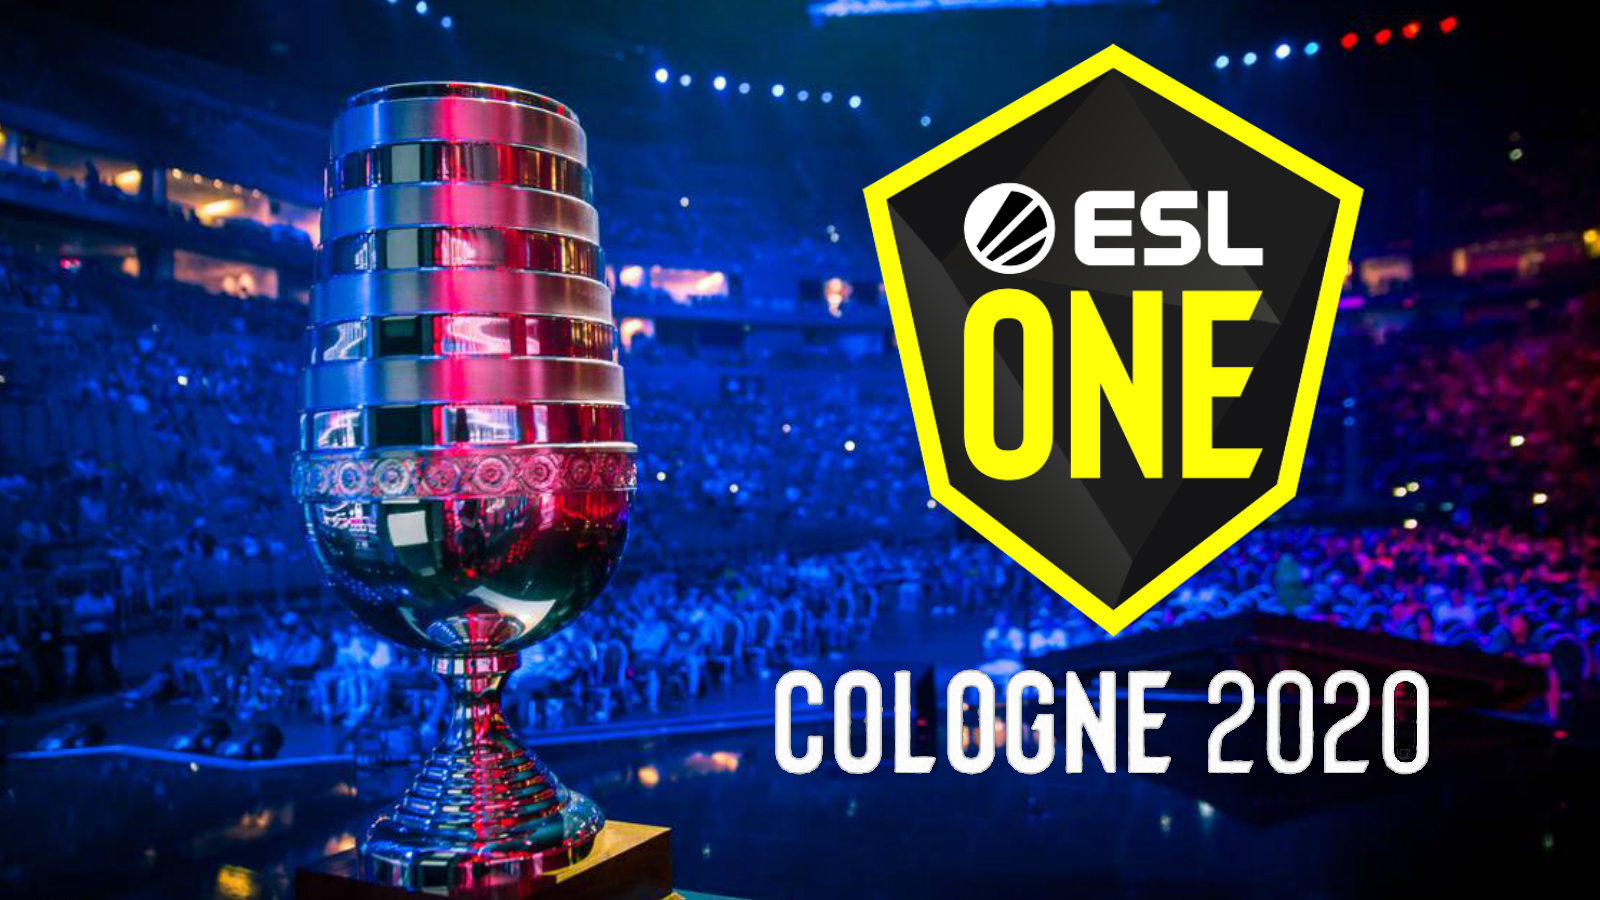 ESL One Cologne trophy and logo